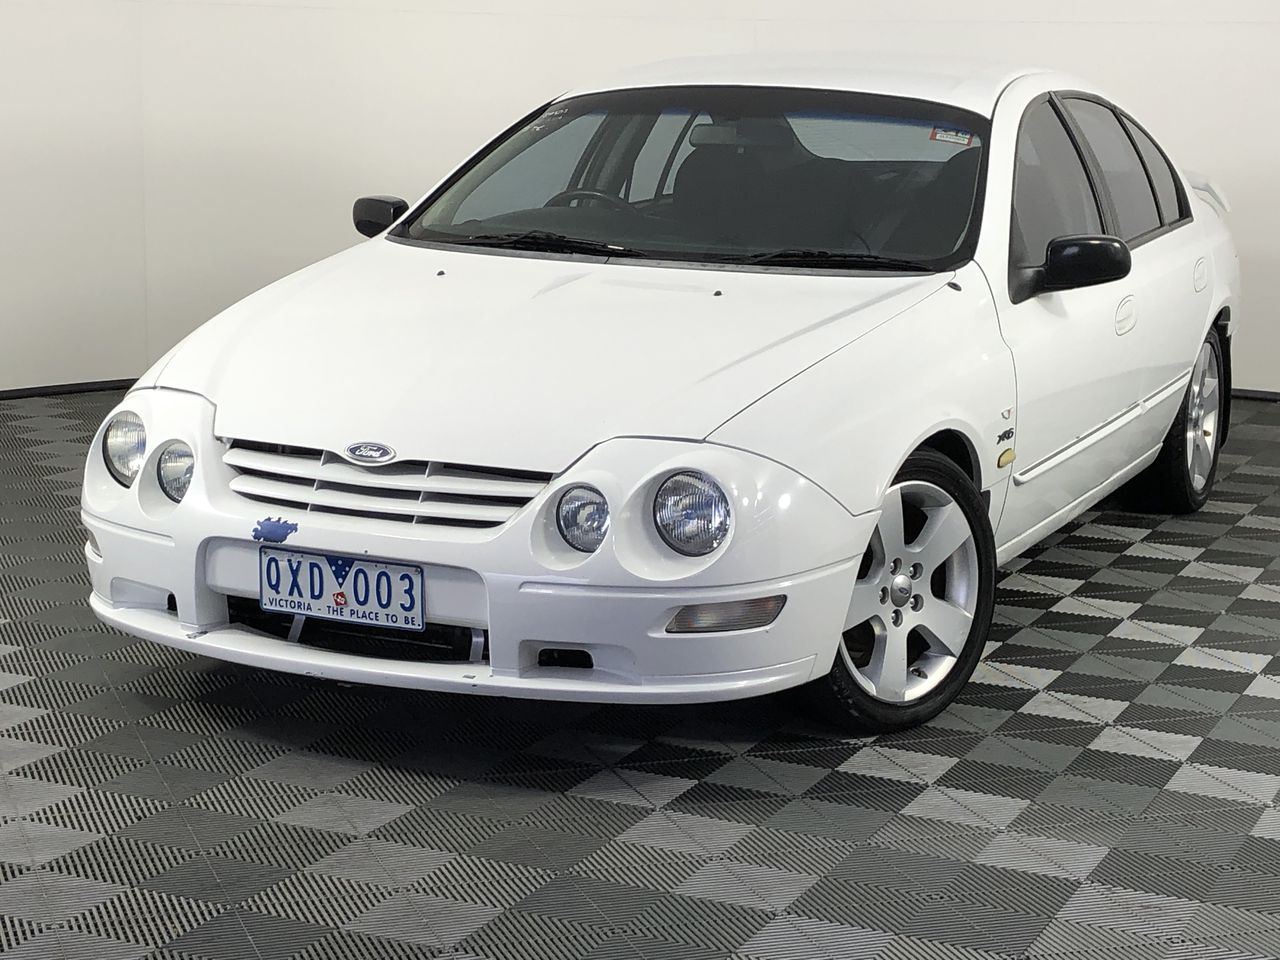 2001 Ford Falcon XR6 VCT AUII Dual Fuel Automatic Sedan